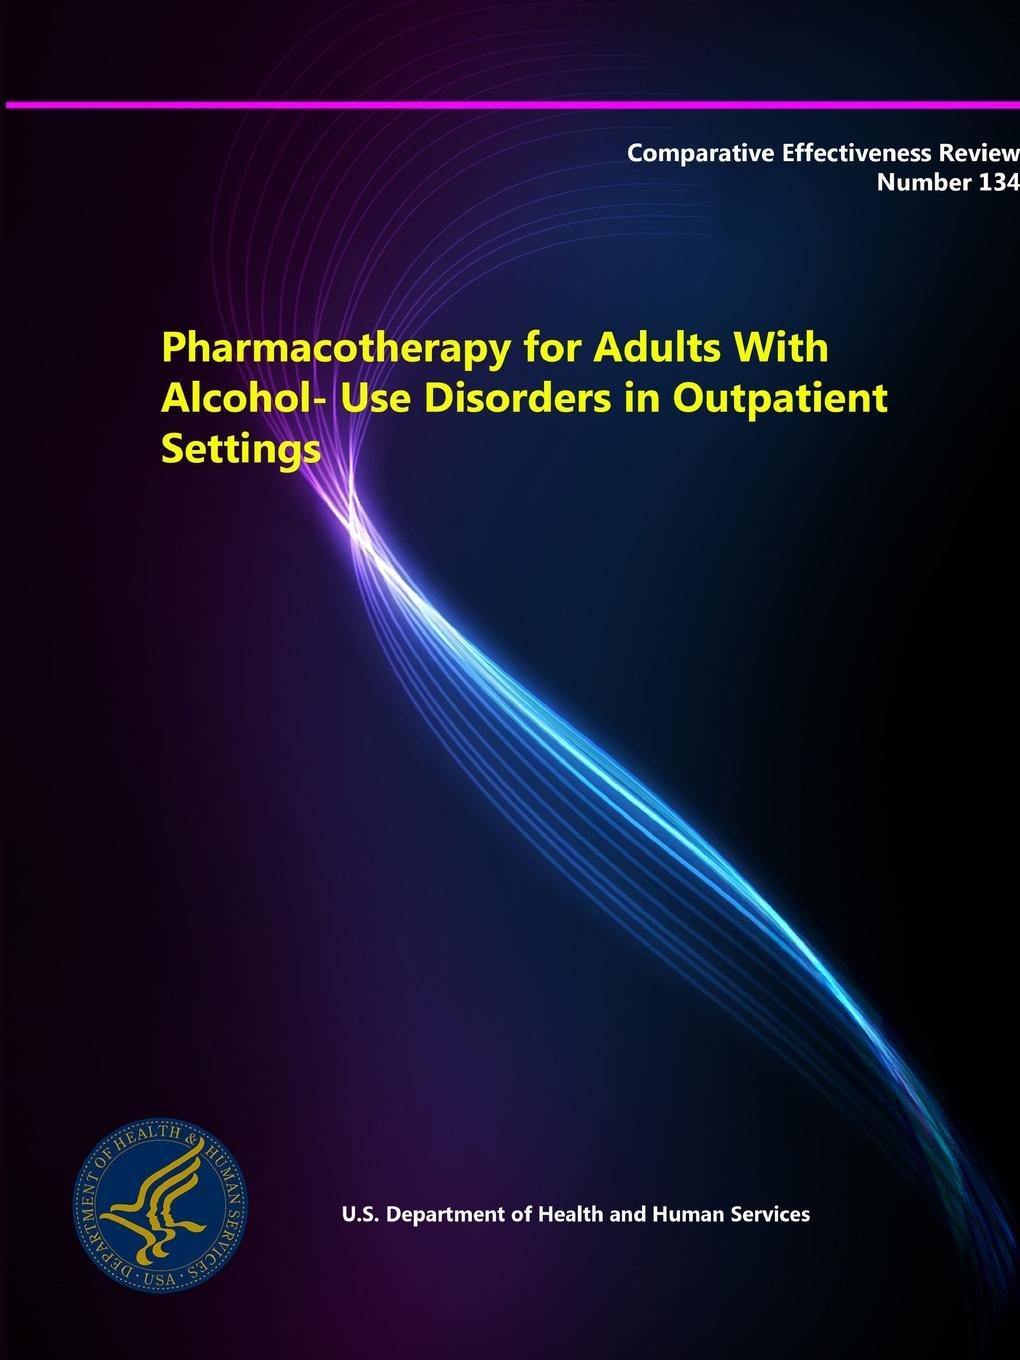 Department of Health and Human Services Pharmacotherapy for Adults With Alcohol-Use Disorders in Outpatient Settings - Comparative Effectiveness Review (Number 134) mudassir hayat khan comparative analysis in retail